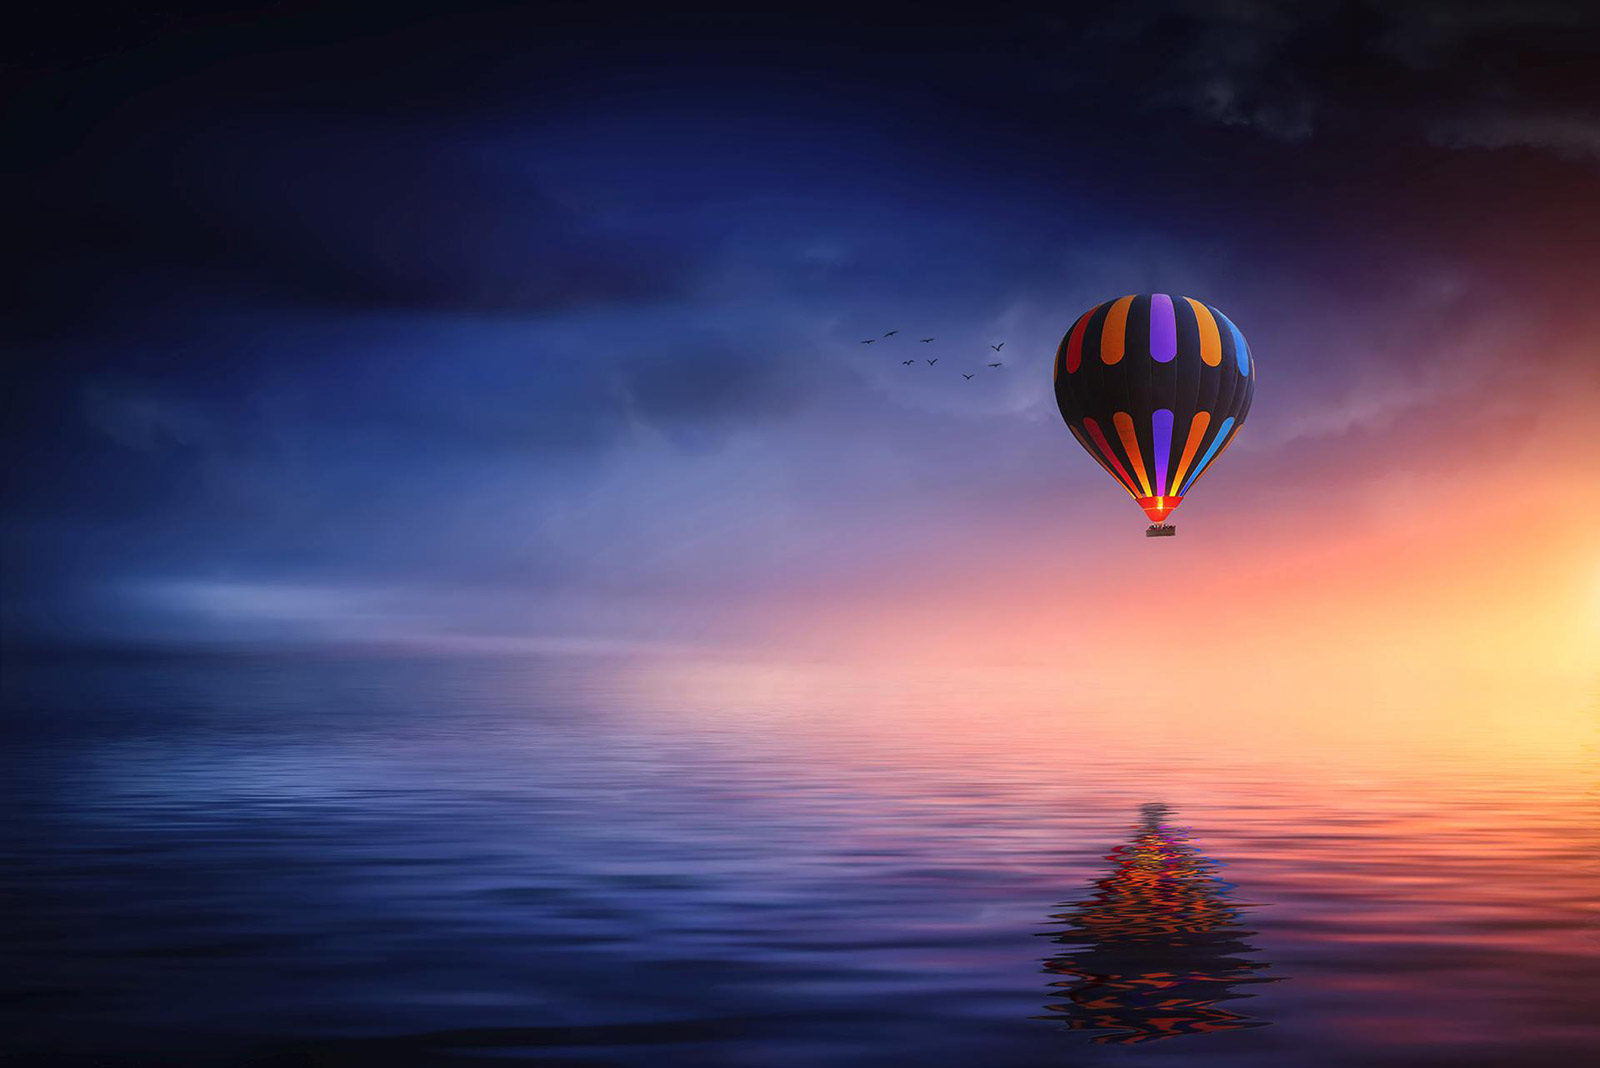 Hot air balloon and birds fly through sunset, reflecting in water below.